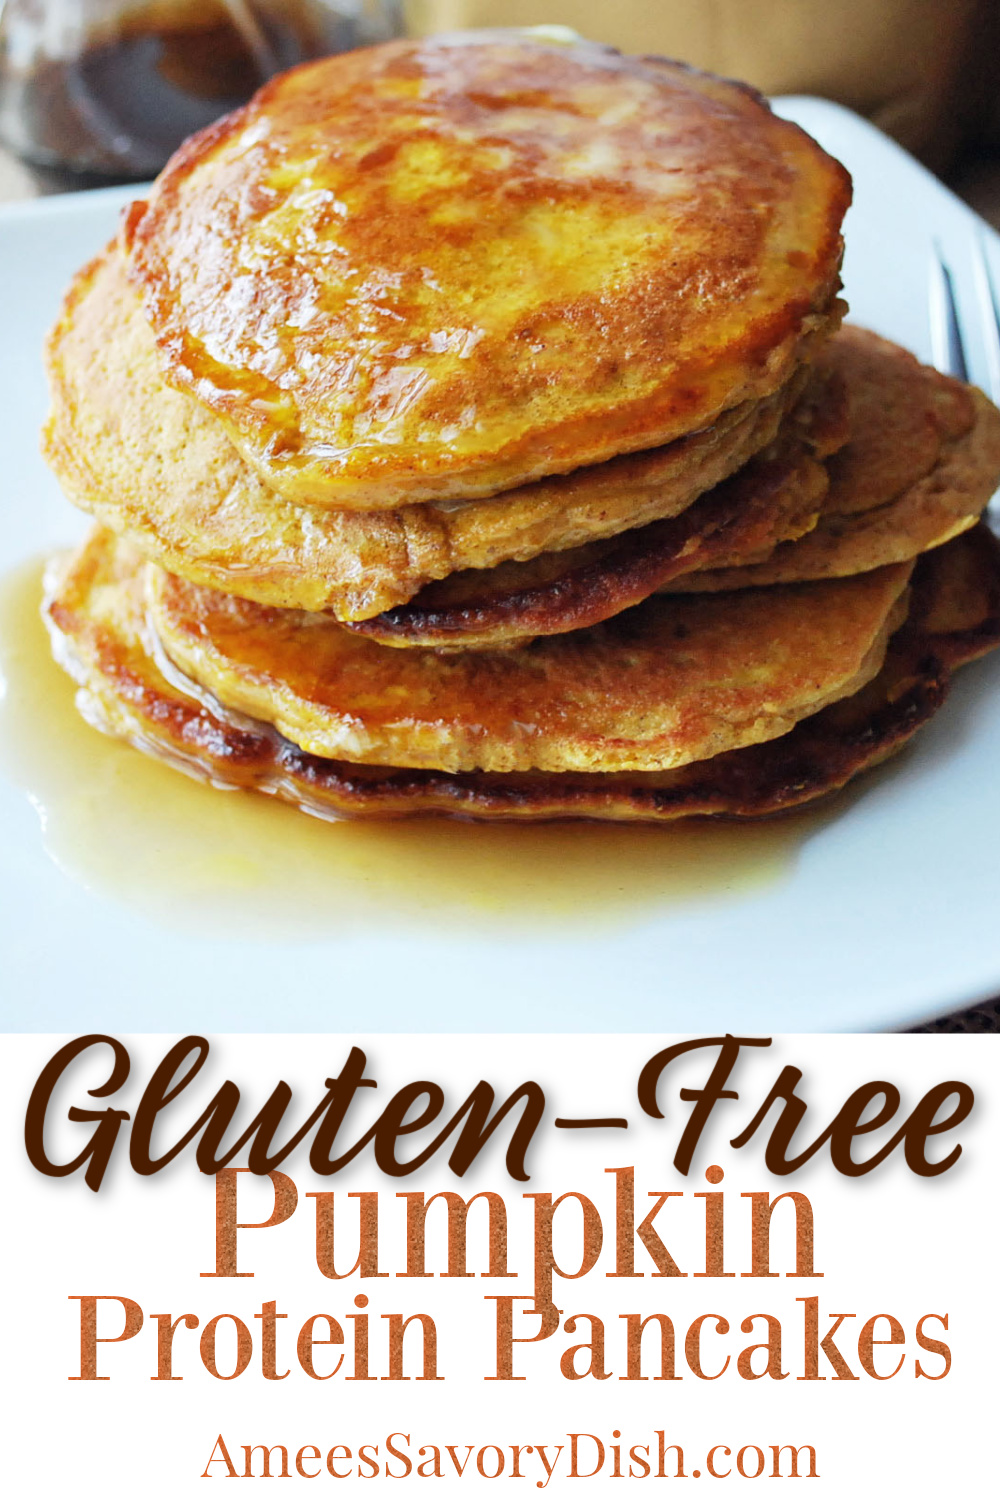 A simple and delicious recipe for gluten-free pumpkin protein pancakes made with ground flaxseed, pumpkin puree, whey protein, oats, and brown rice flour.  #proteinpancakes #proteinrecipes #pumpkinpancakes #glutenfreepancakes via @Ameessavorydish